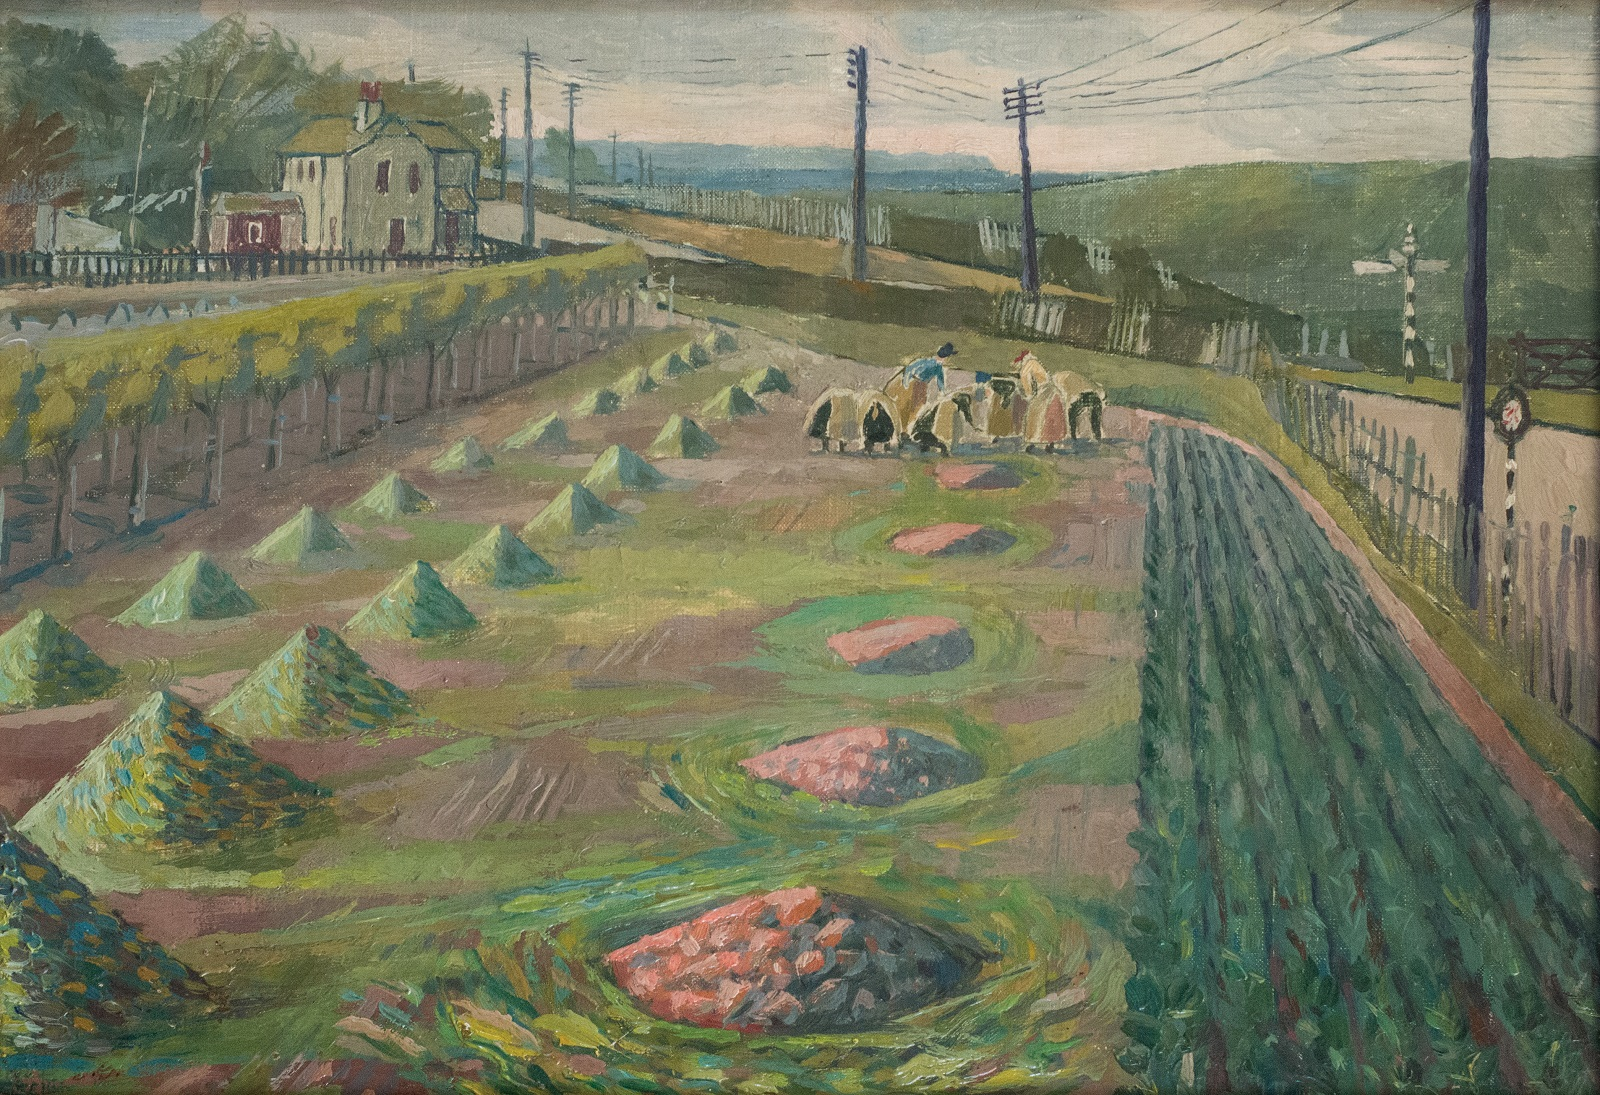 A field with furrowed rows and piles of crops with a group of women working in the distance